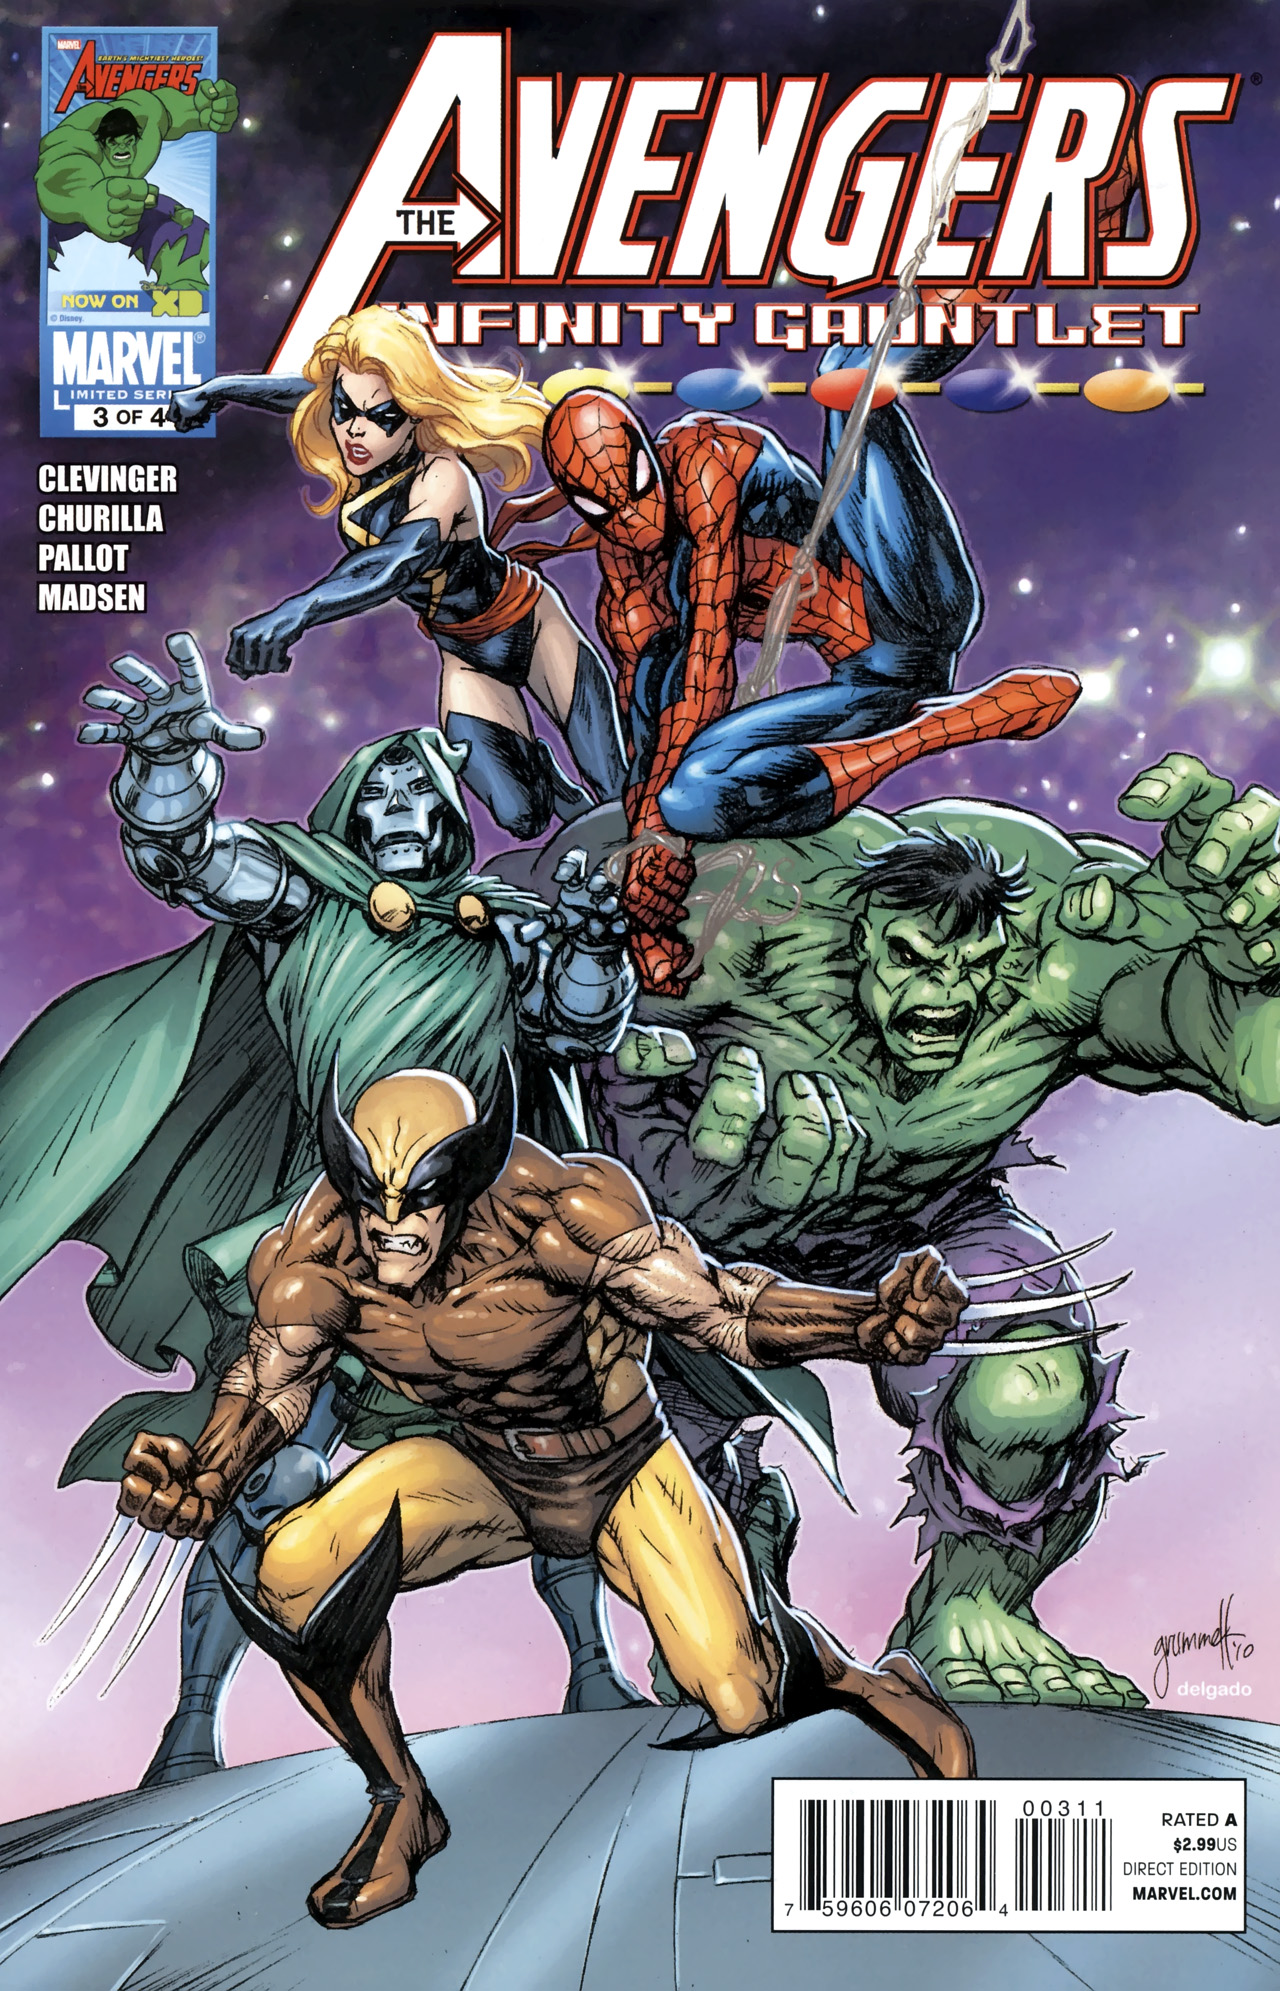 Avengers & the Infinity Gauntlet Vol 1 3